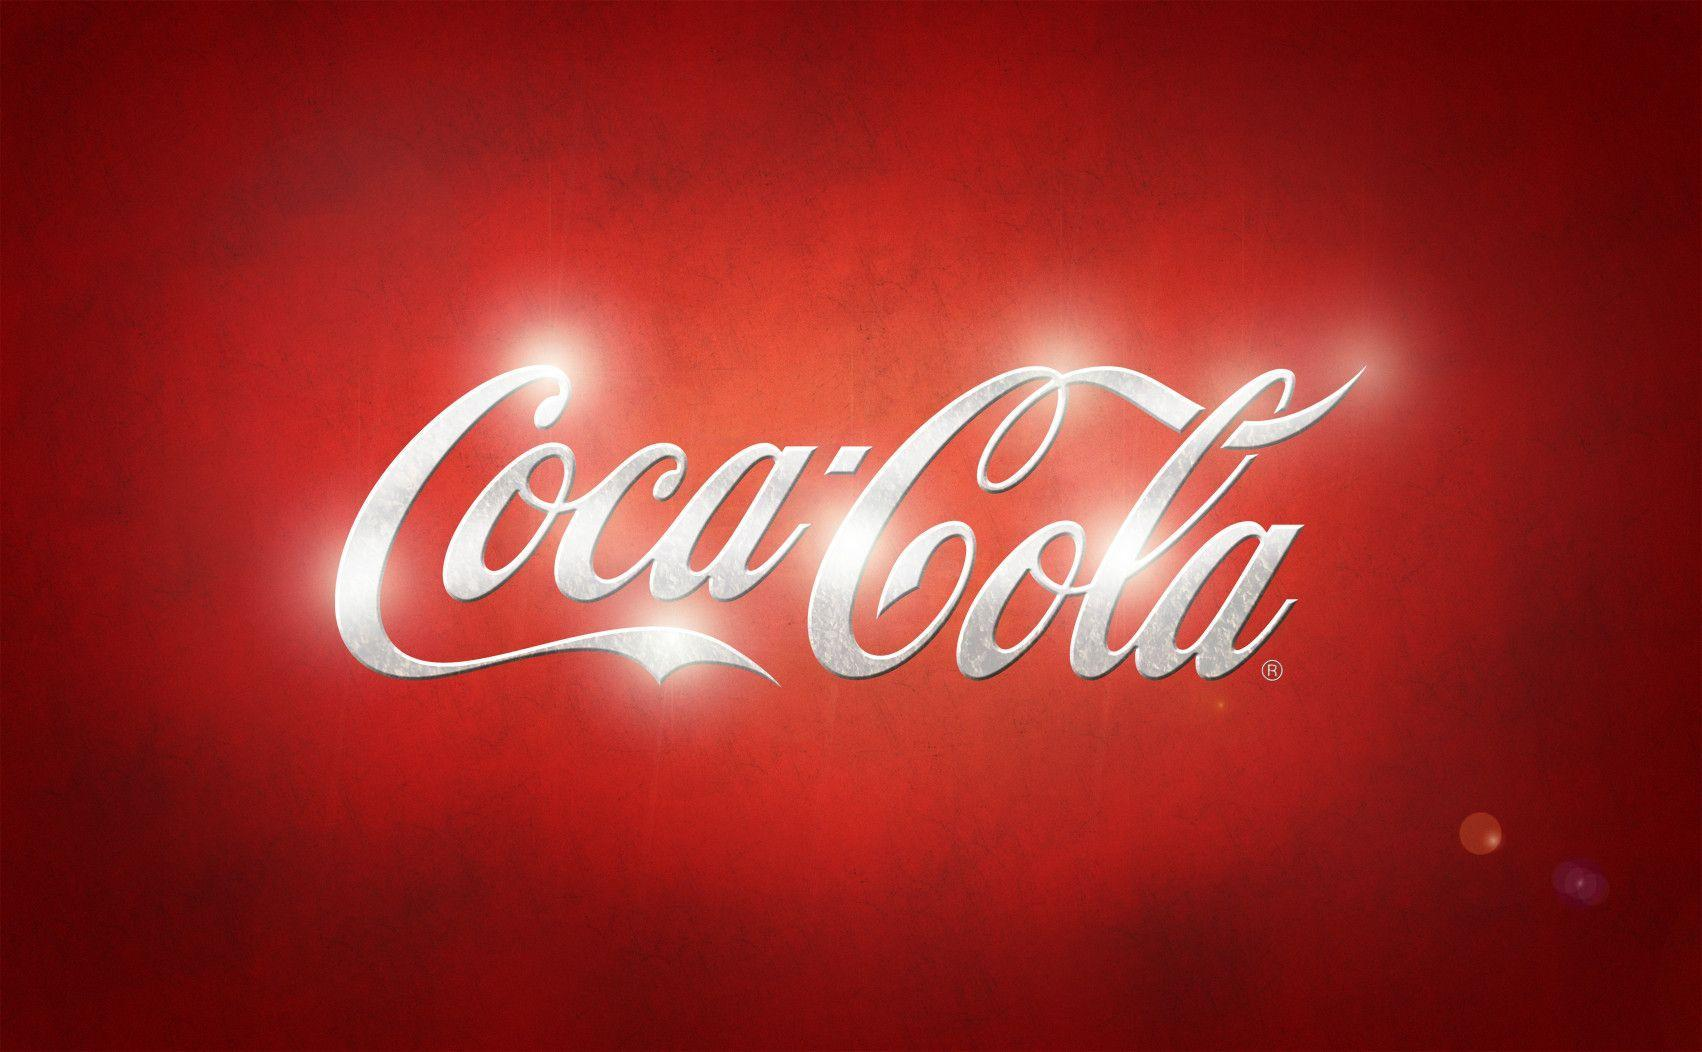 Vintage Coca Cola Wallpapers Group